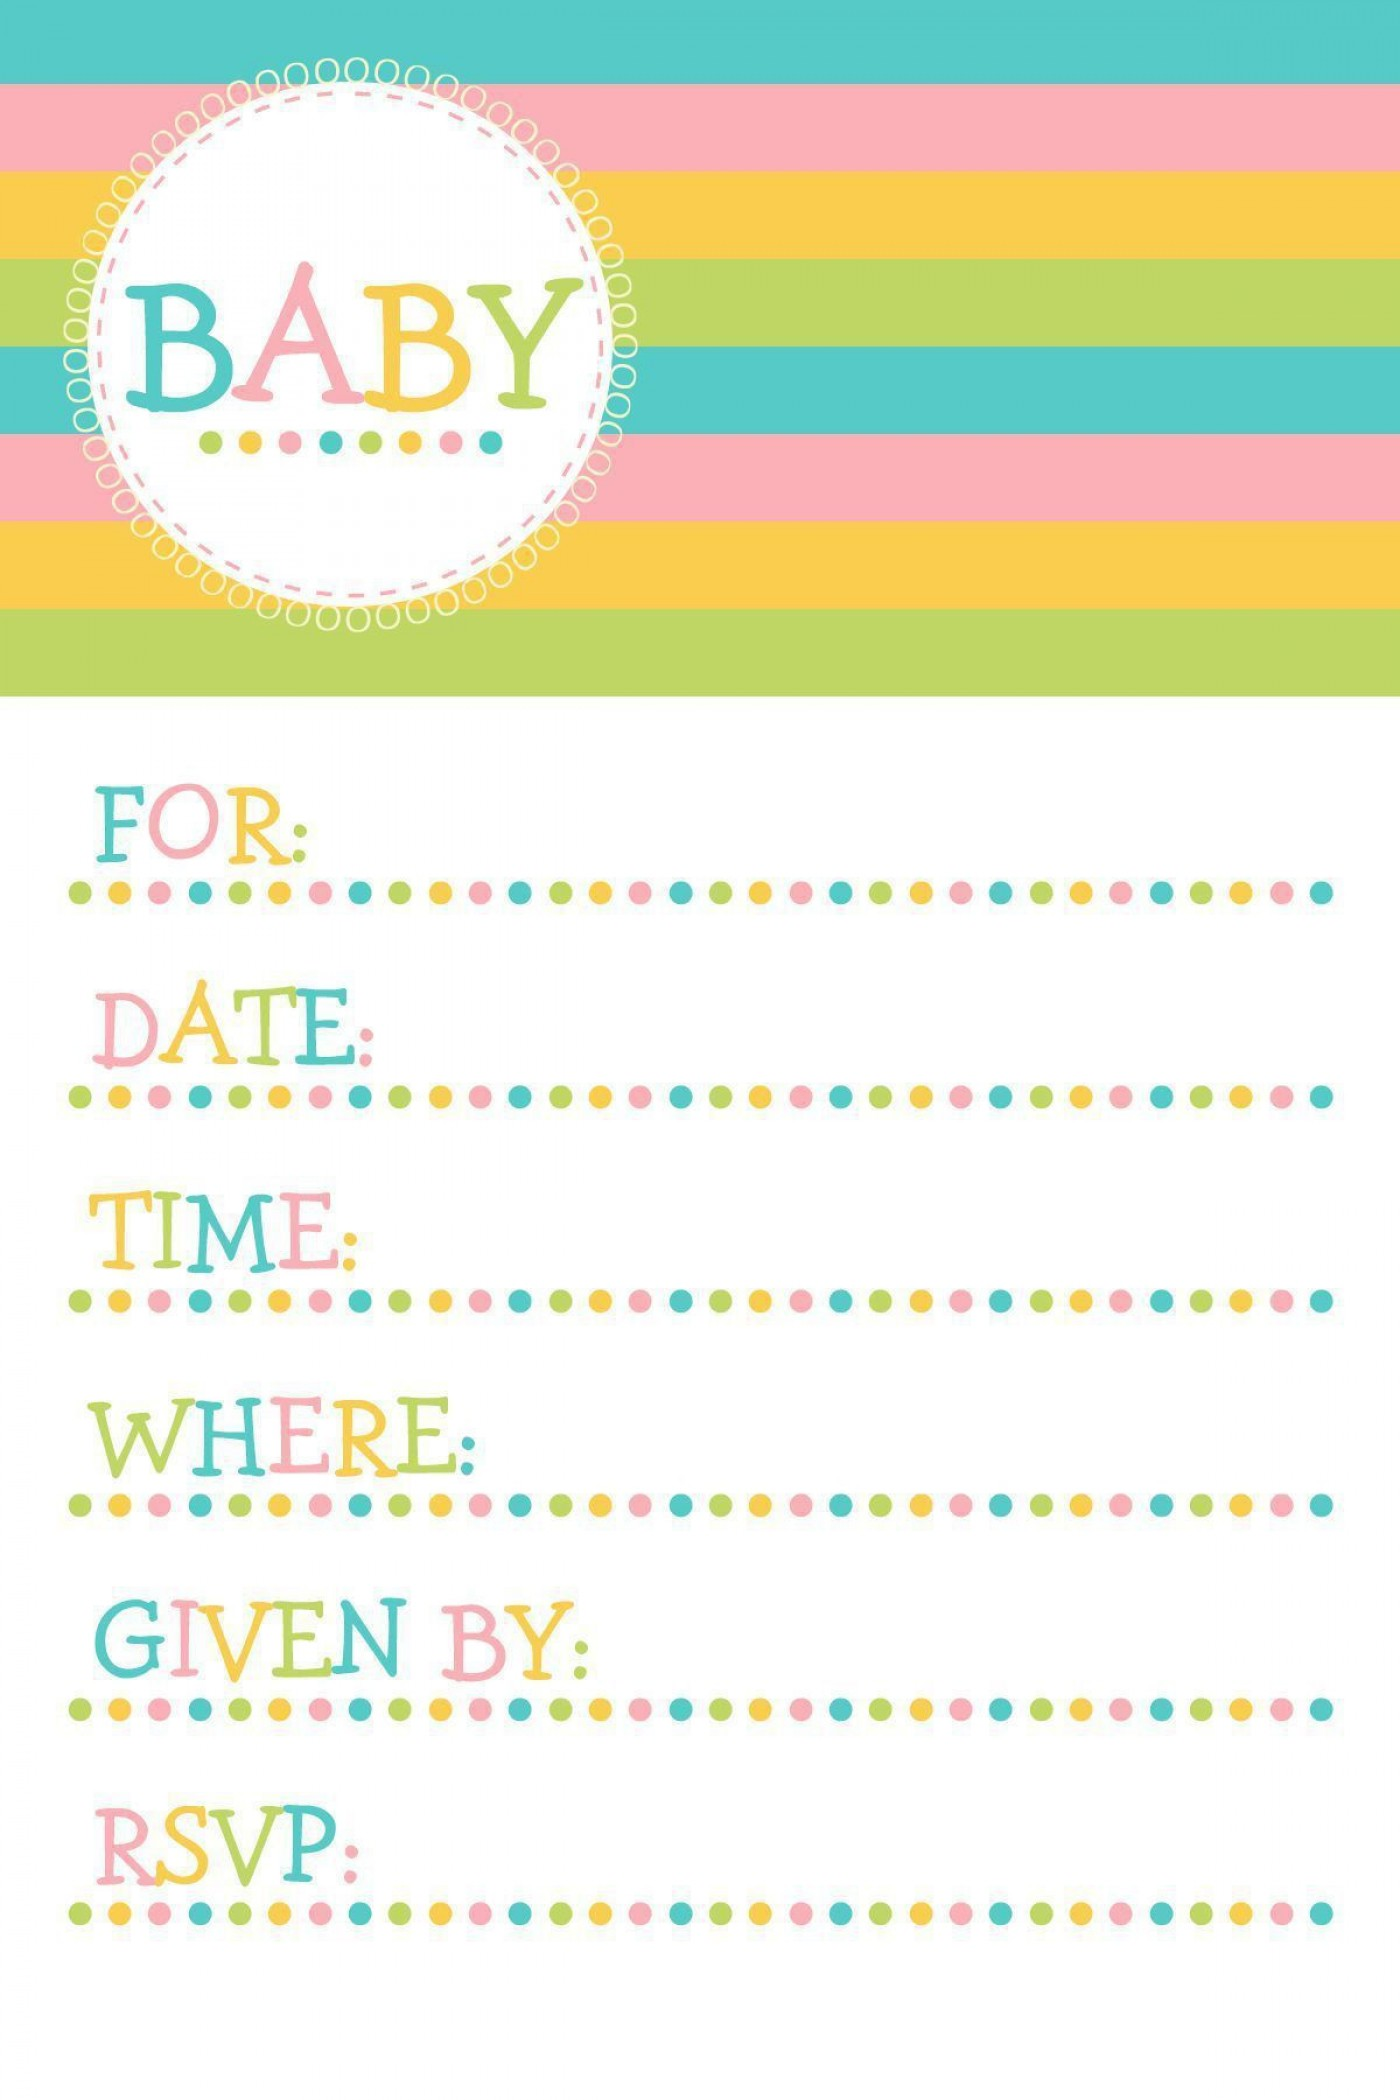 004 Magnificent Baby Shower Invitation Template Microsoft Word Photo  Free Editable1400